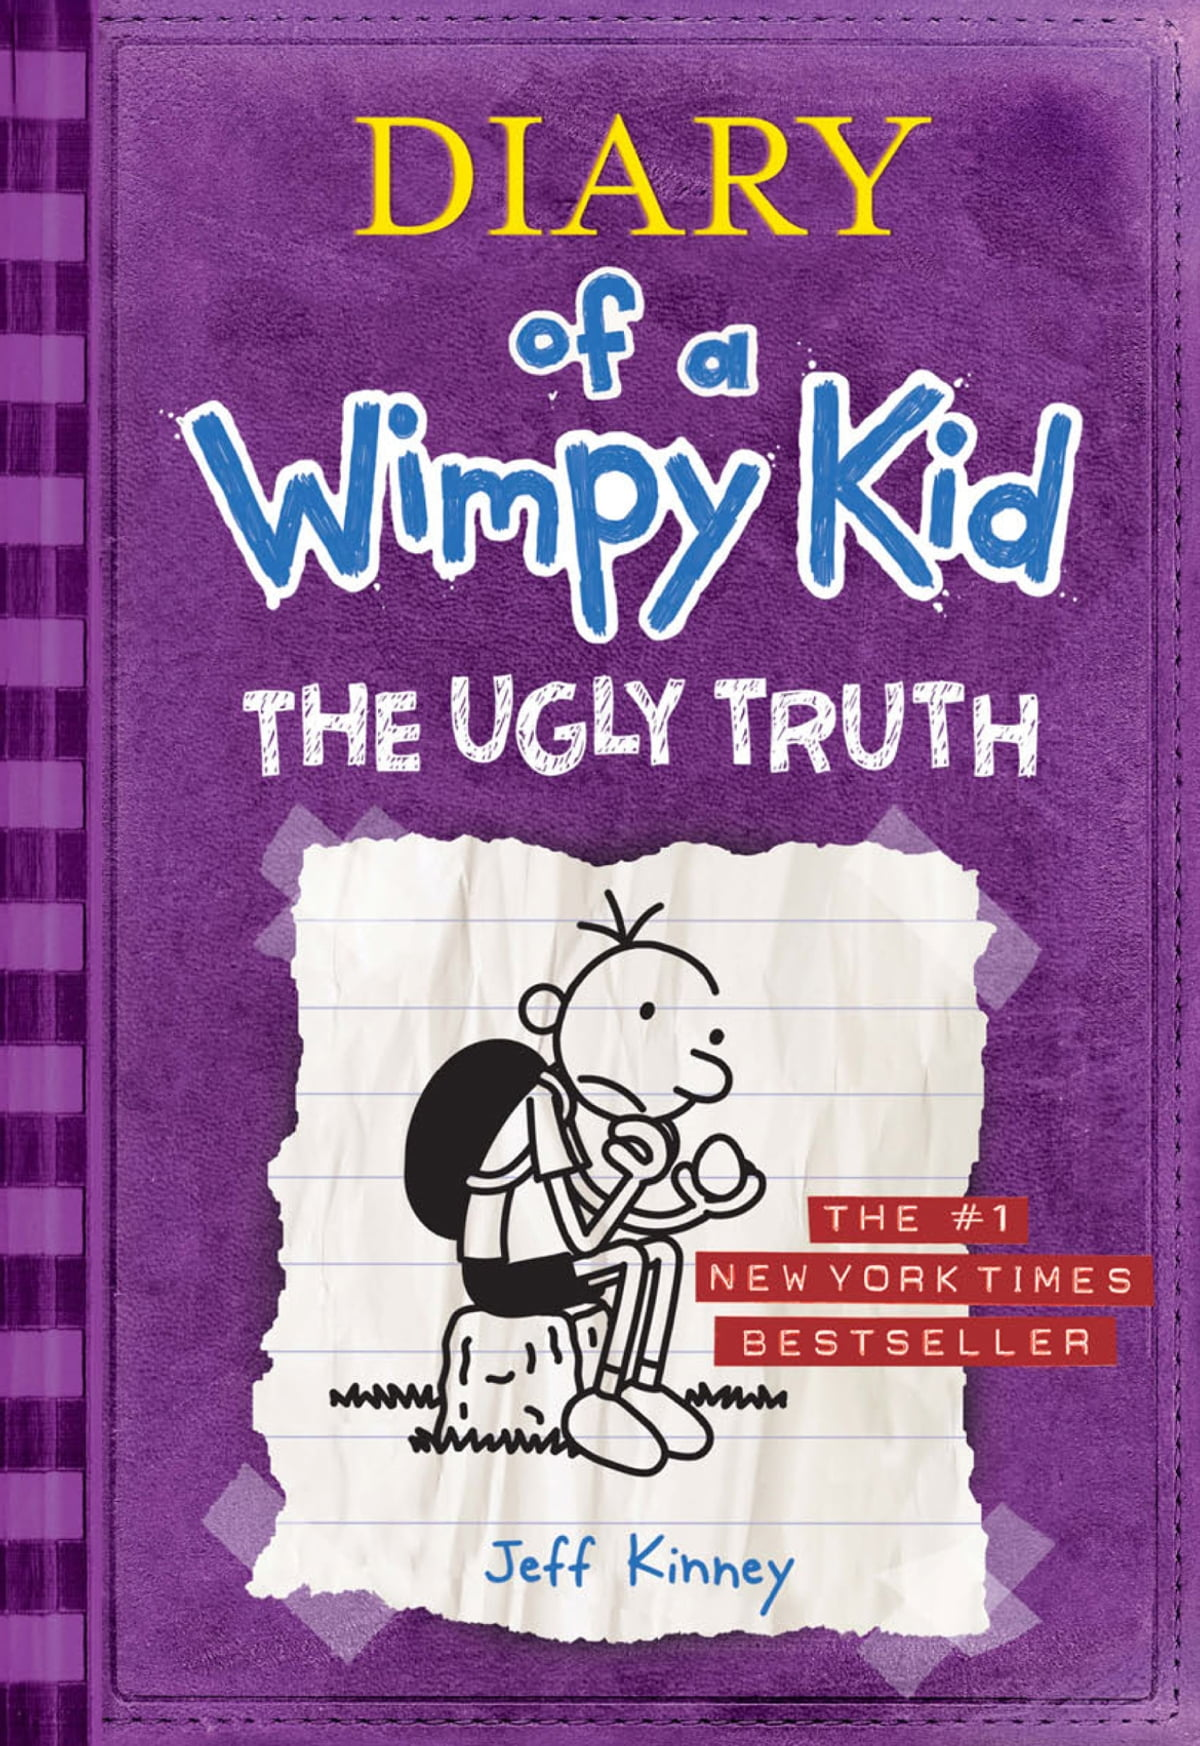 The Ugly Truth Diary Of A Wimpy Kid 5 Ebook By Jeff Kinney 9781613122488 Rakuten Kobo United States